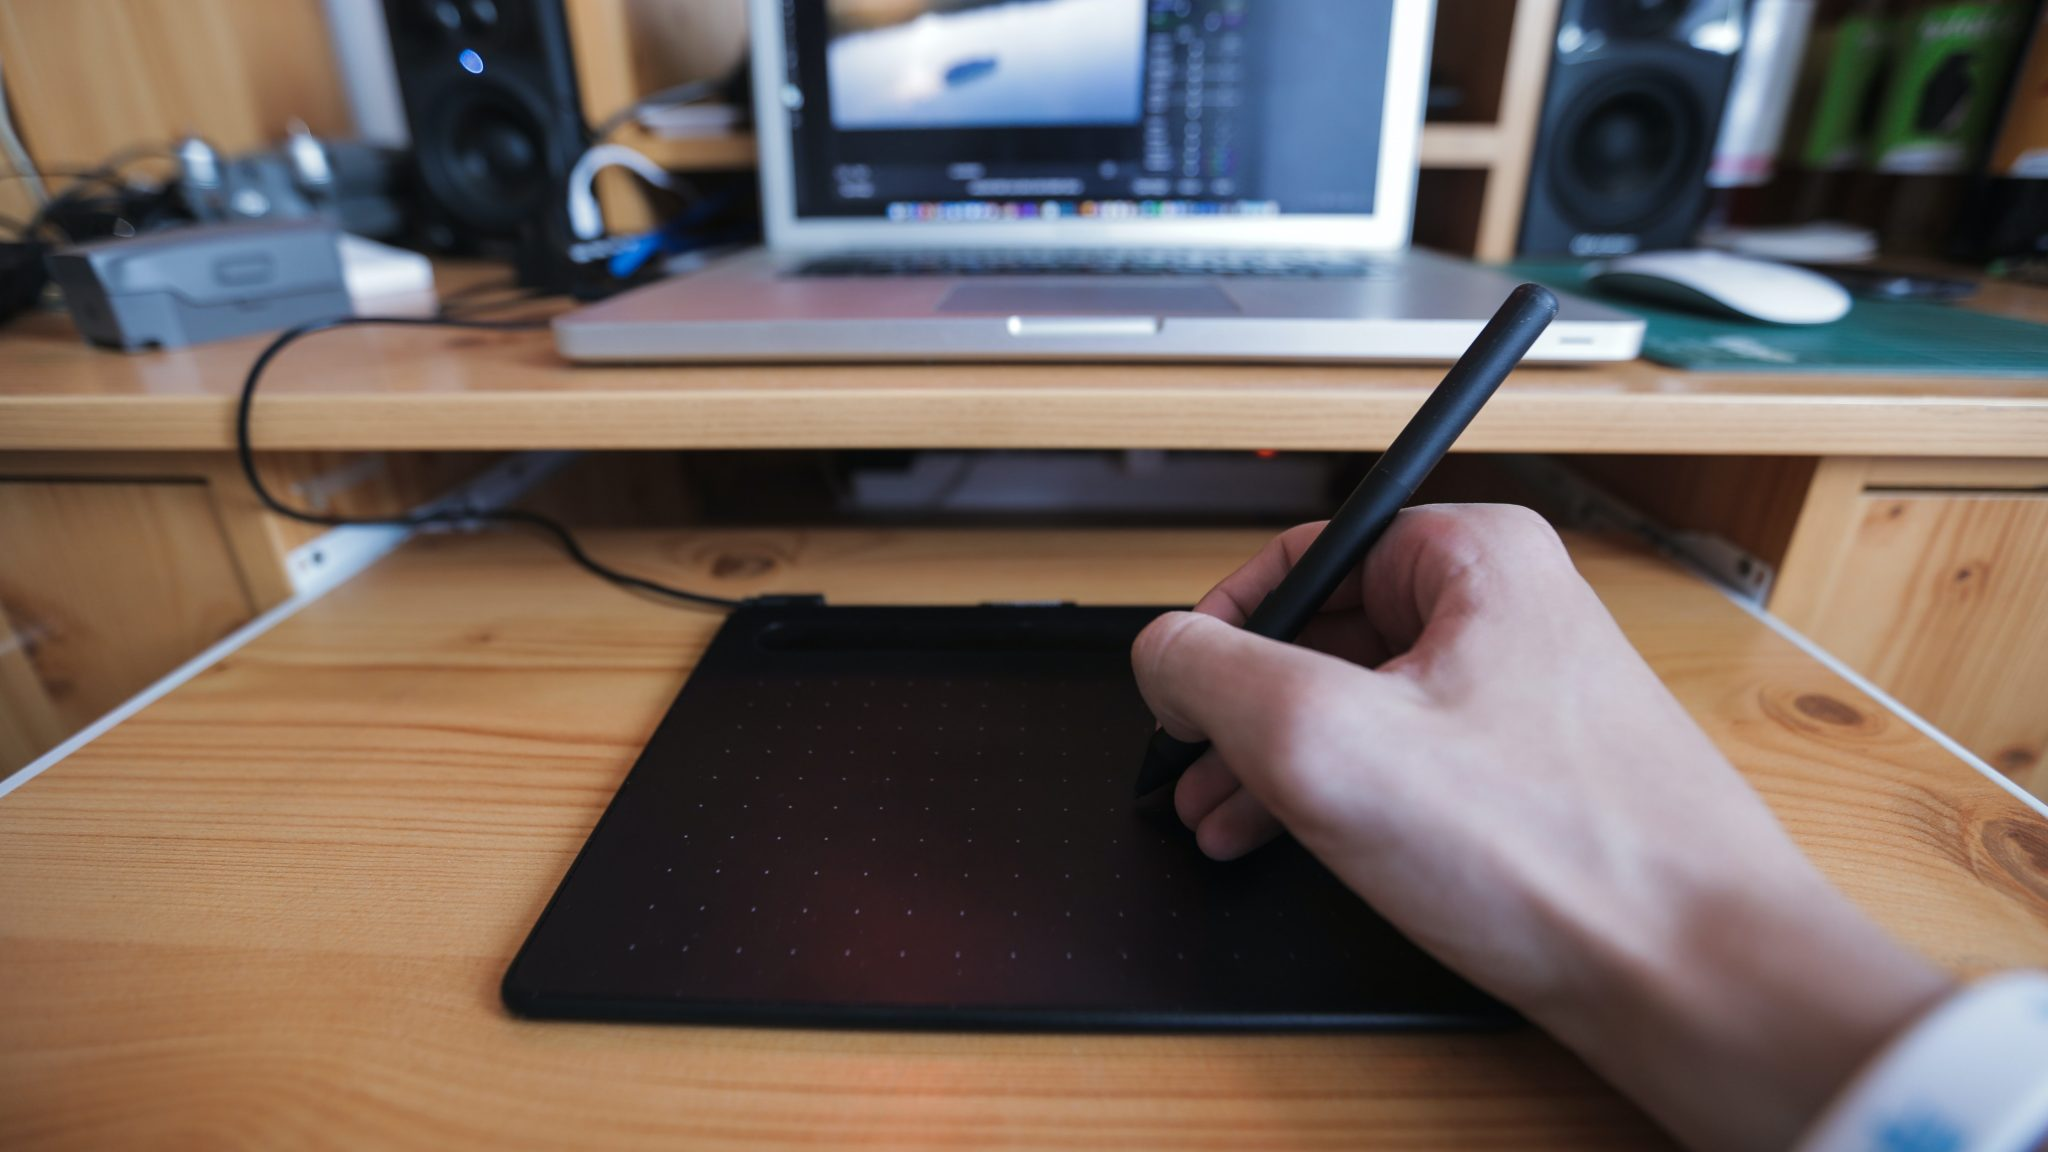 wacom tablet photographe